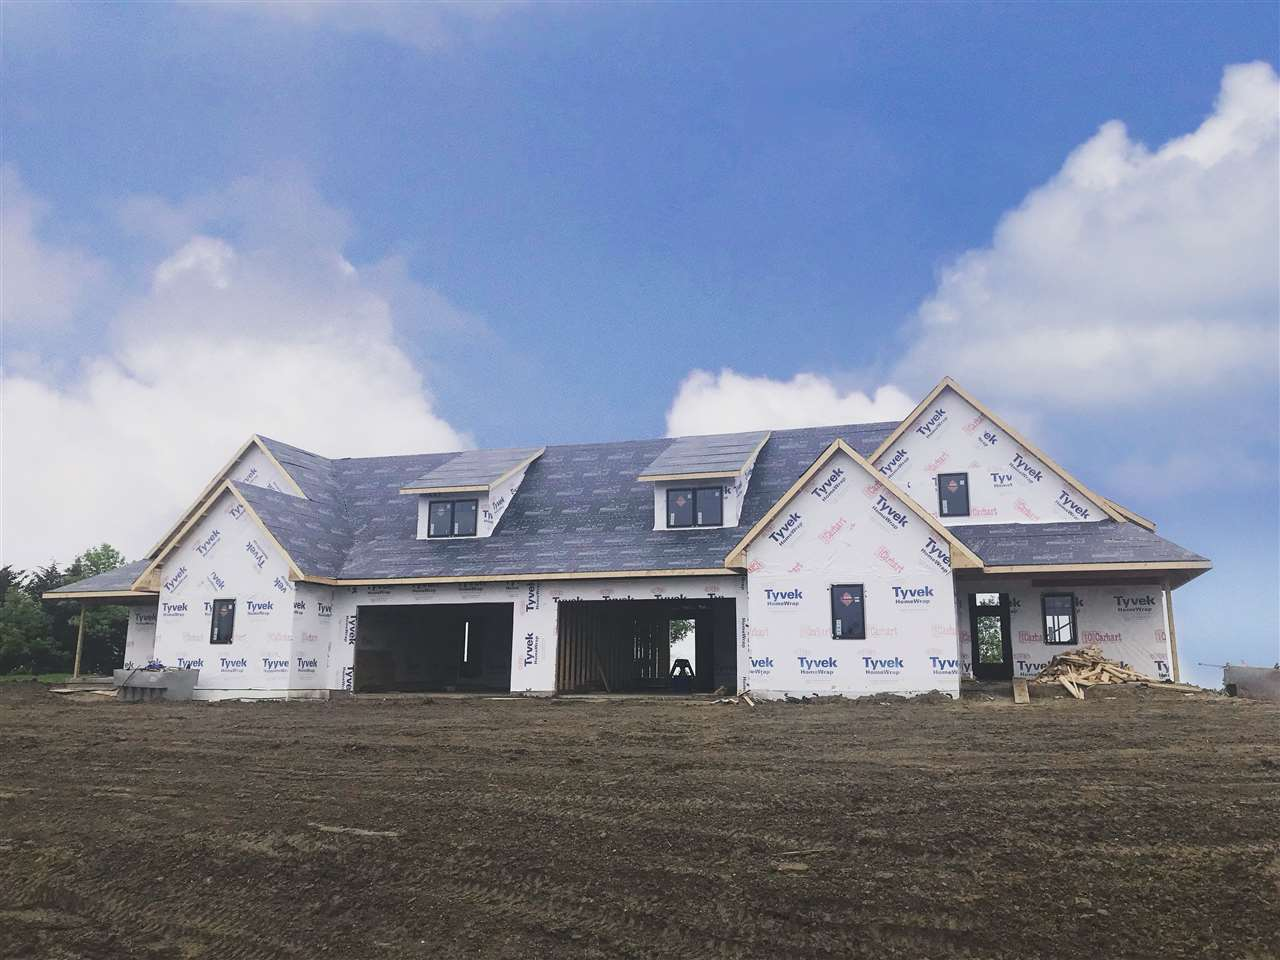 Property for sale at 232 Hide-a-way Drive, Crofton,  NE 68730